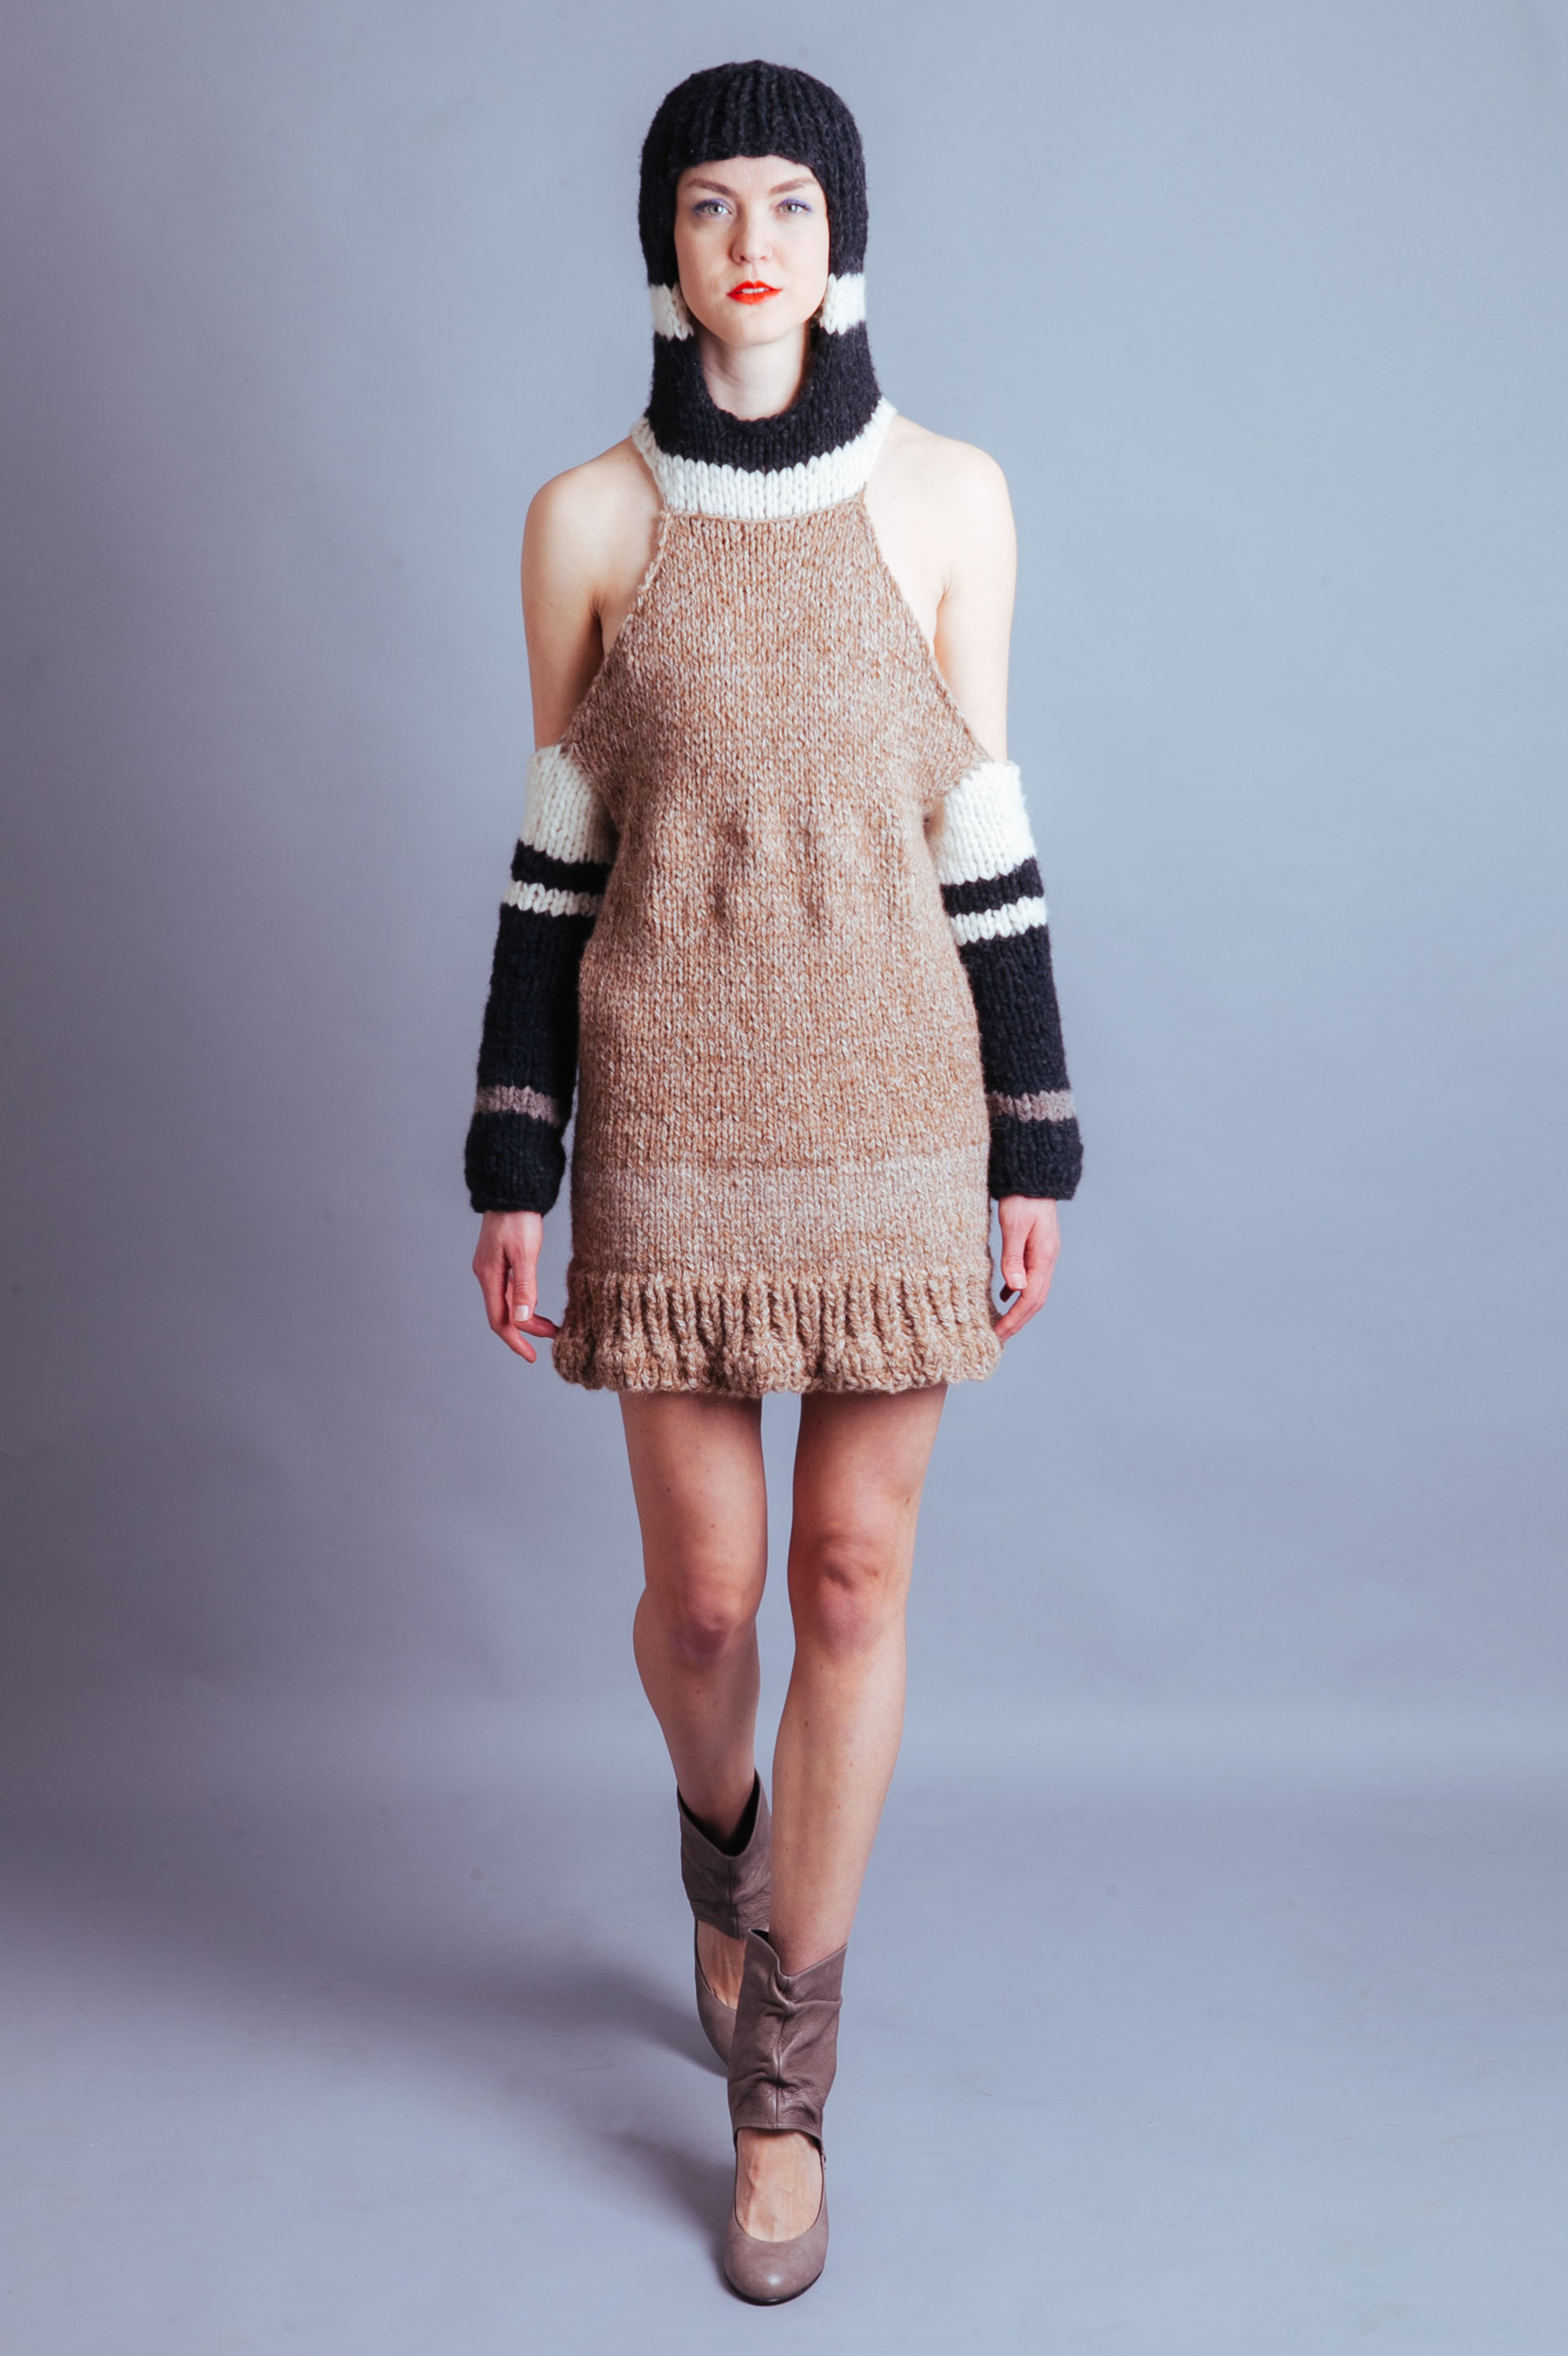 Claire Andrew luxury womenswear designer | Hooded tweed monochrom knit dress | Perfect for February in New York